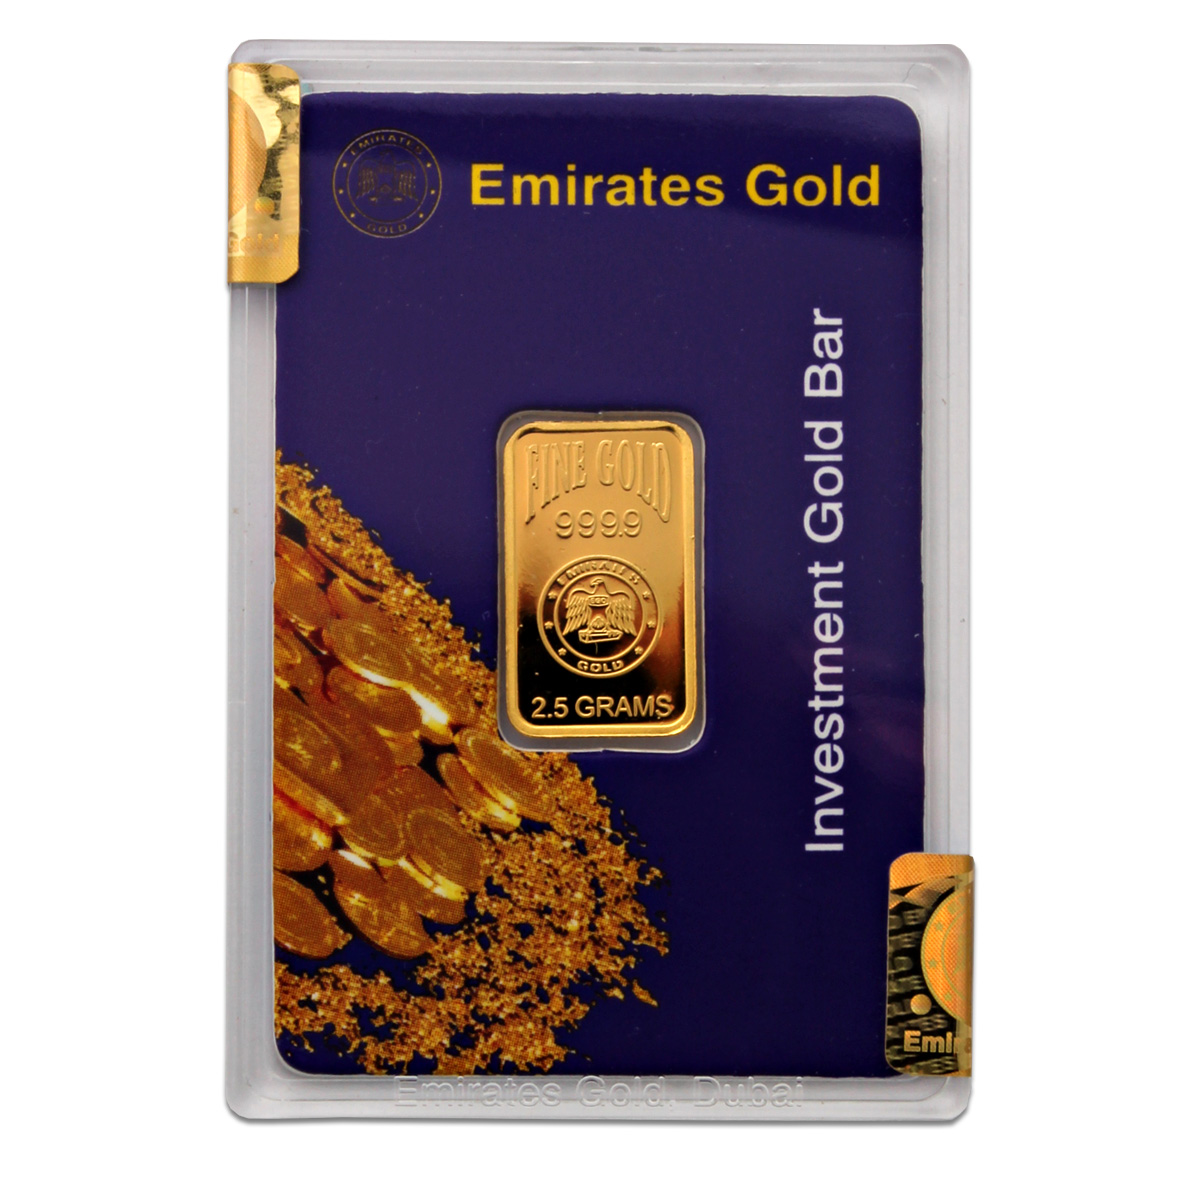 2.5g Gold Bar - Emirates Gold Boxed Certified